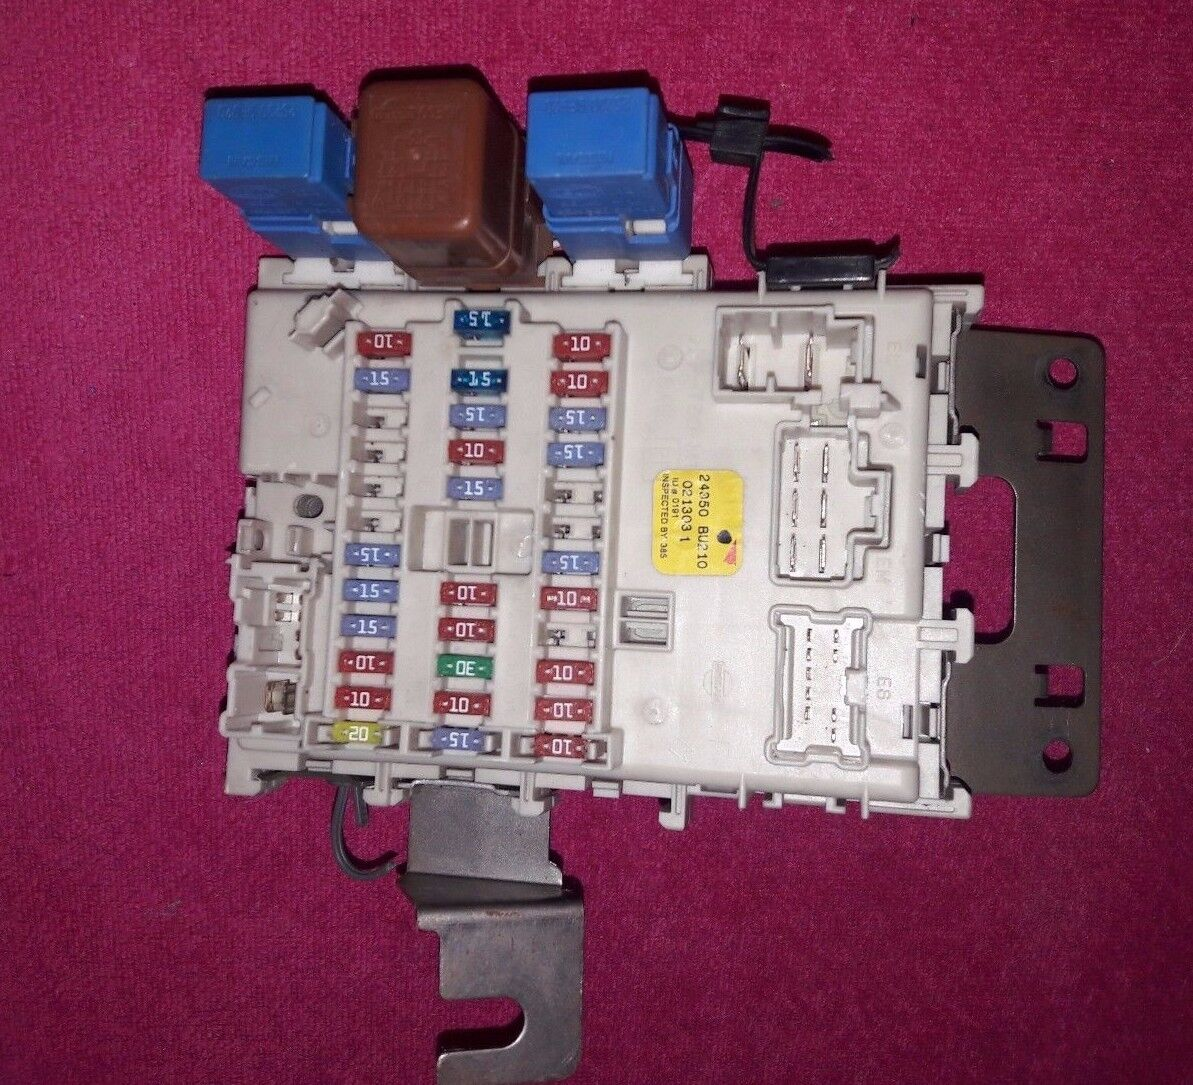 Used Nissan Controllers For Sale Page 14 Almera Fuse Box Bsm 24350bu210 Tino 18